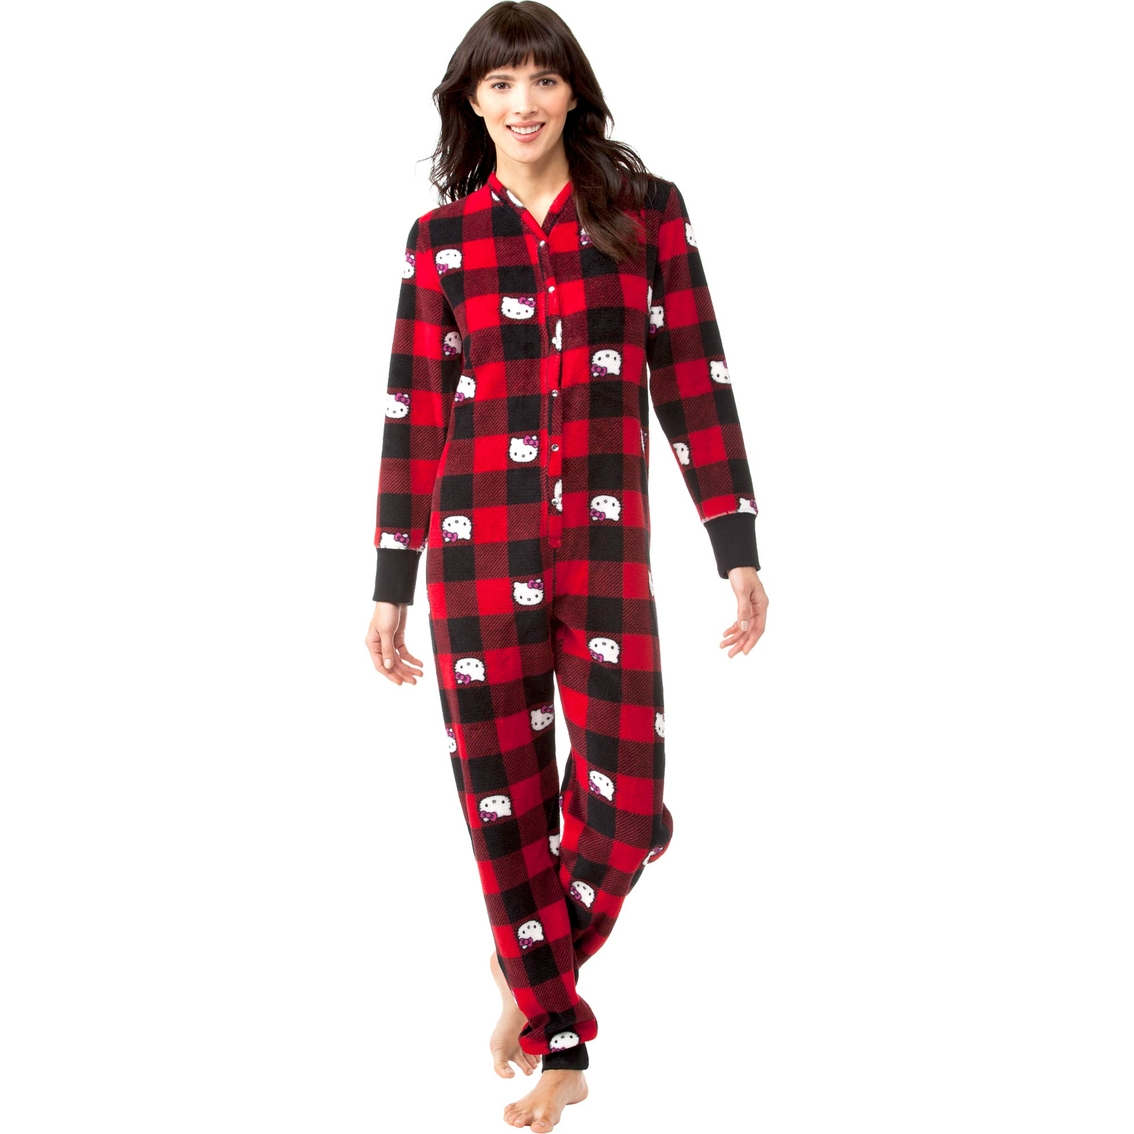 92d9a5499 Hello Kitty Plaid Plush Union Suit Sleepwear | Pajamas & Robes ...